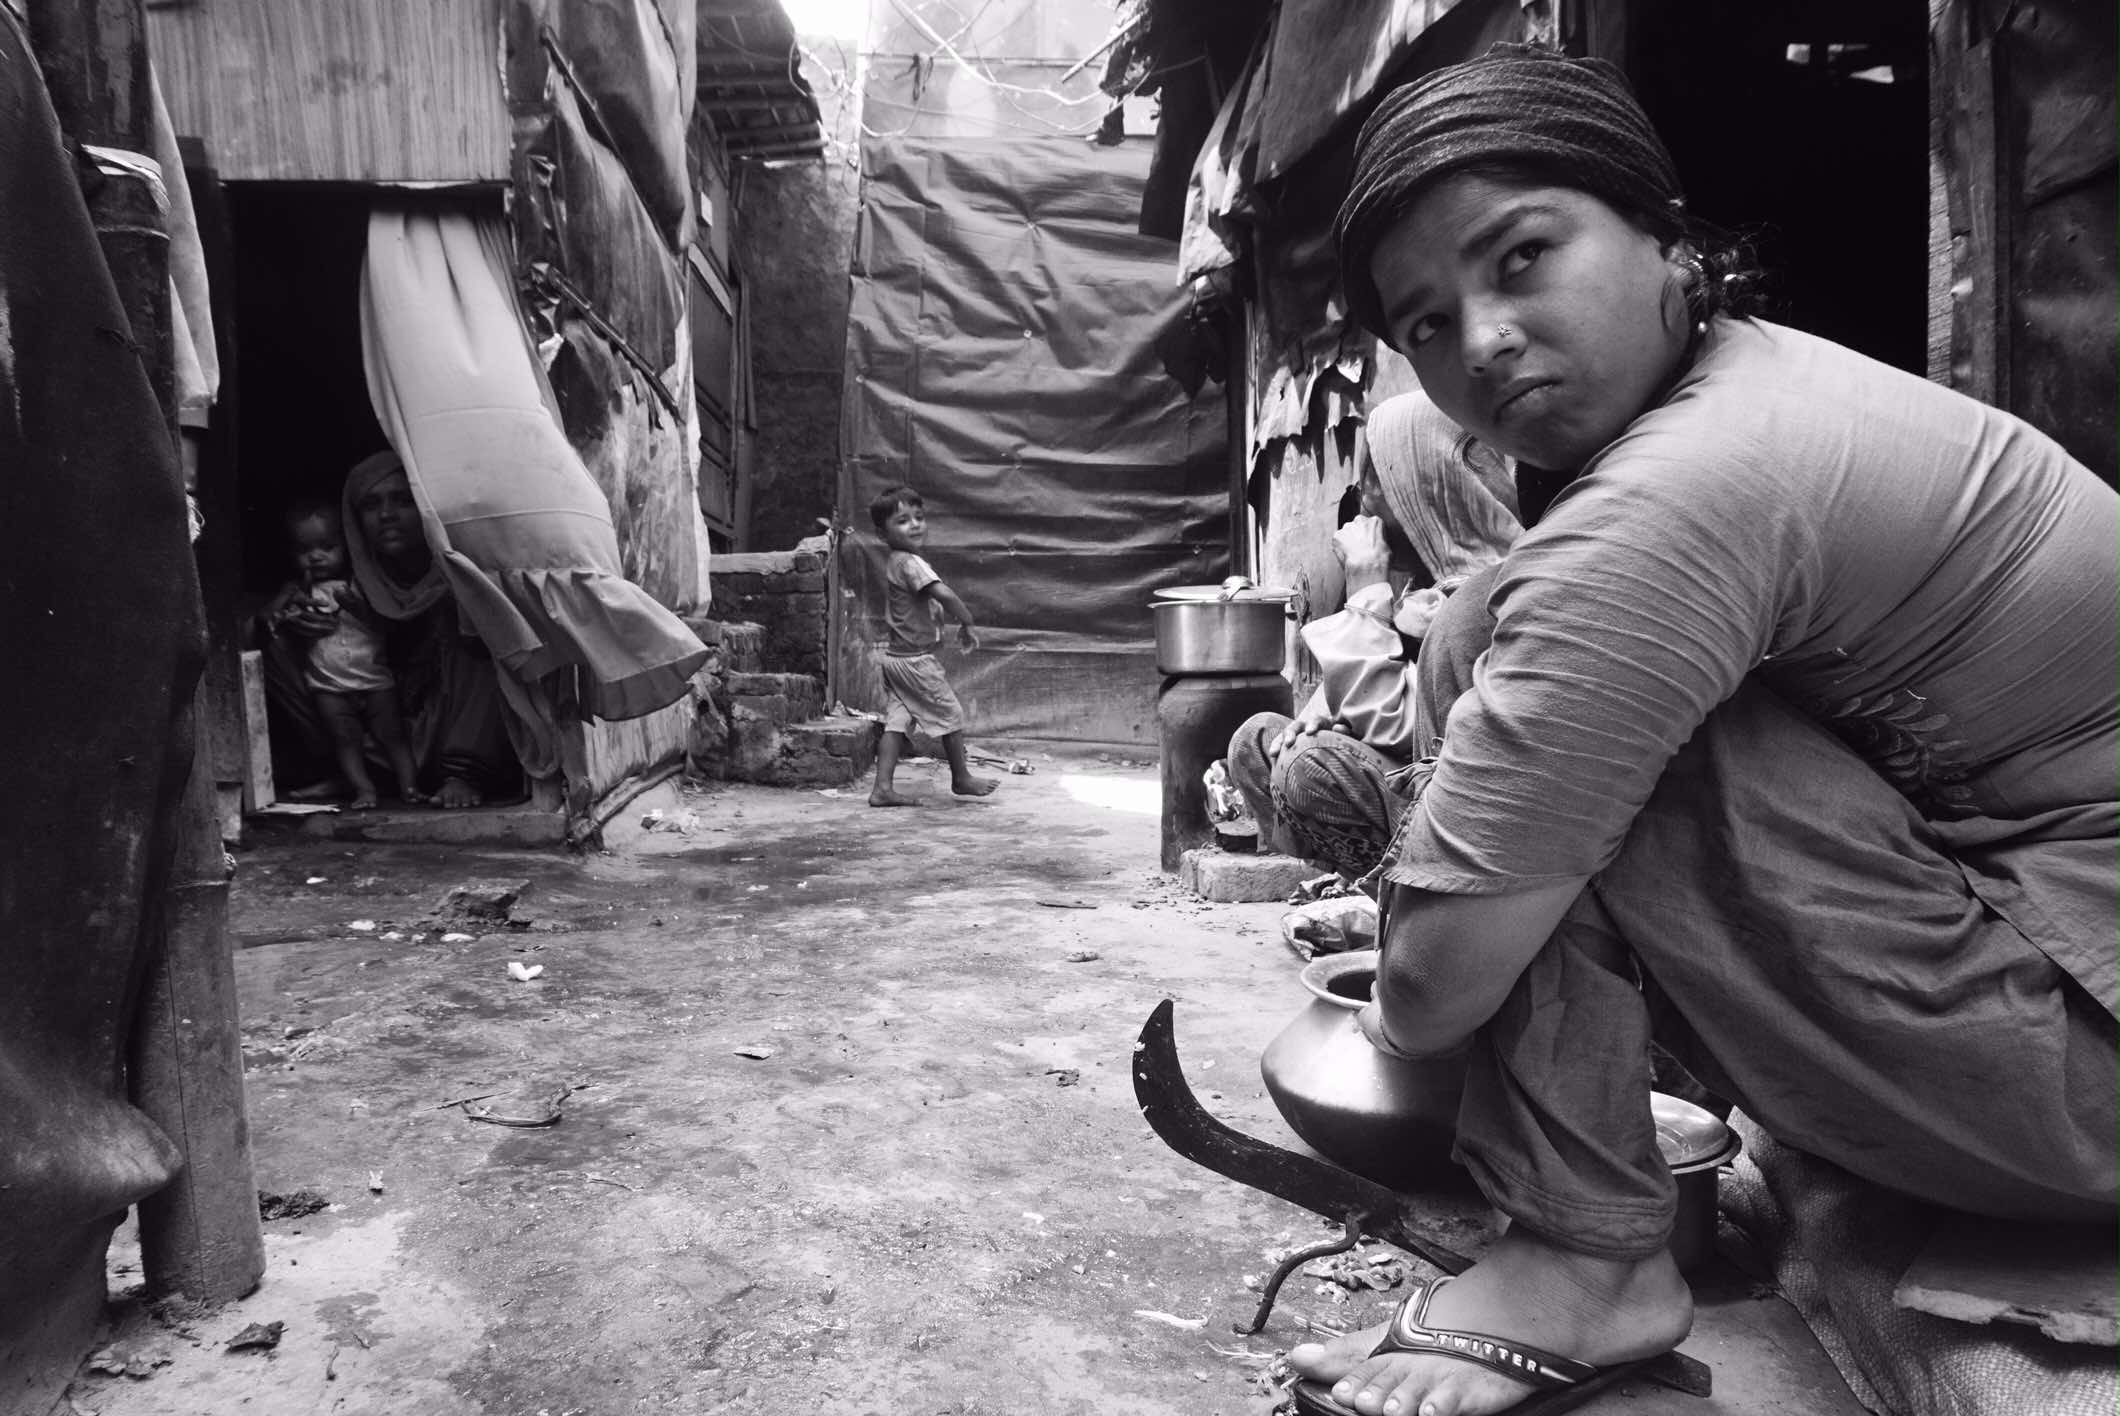 In the Rohingya camp at Madanpur Khader, Delhi.